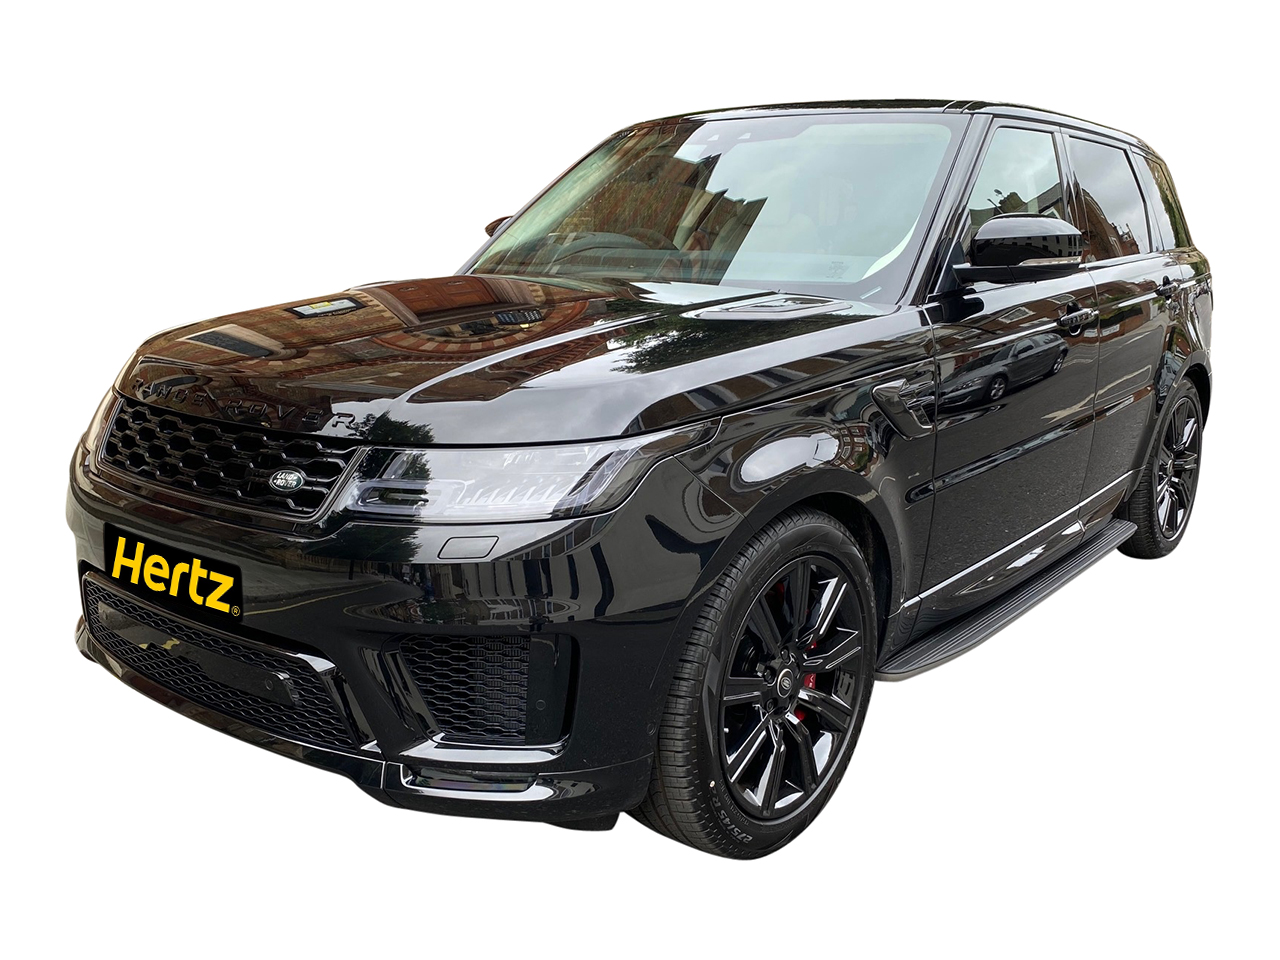 Range Rover Sport 3.0 P400 HST Car for hire